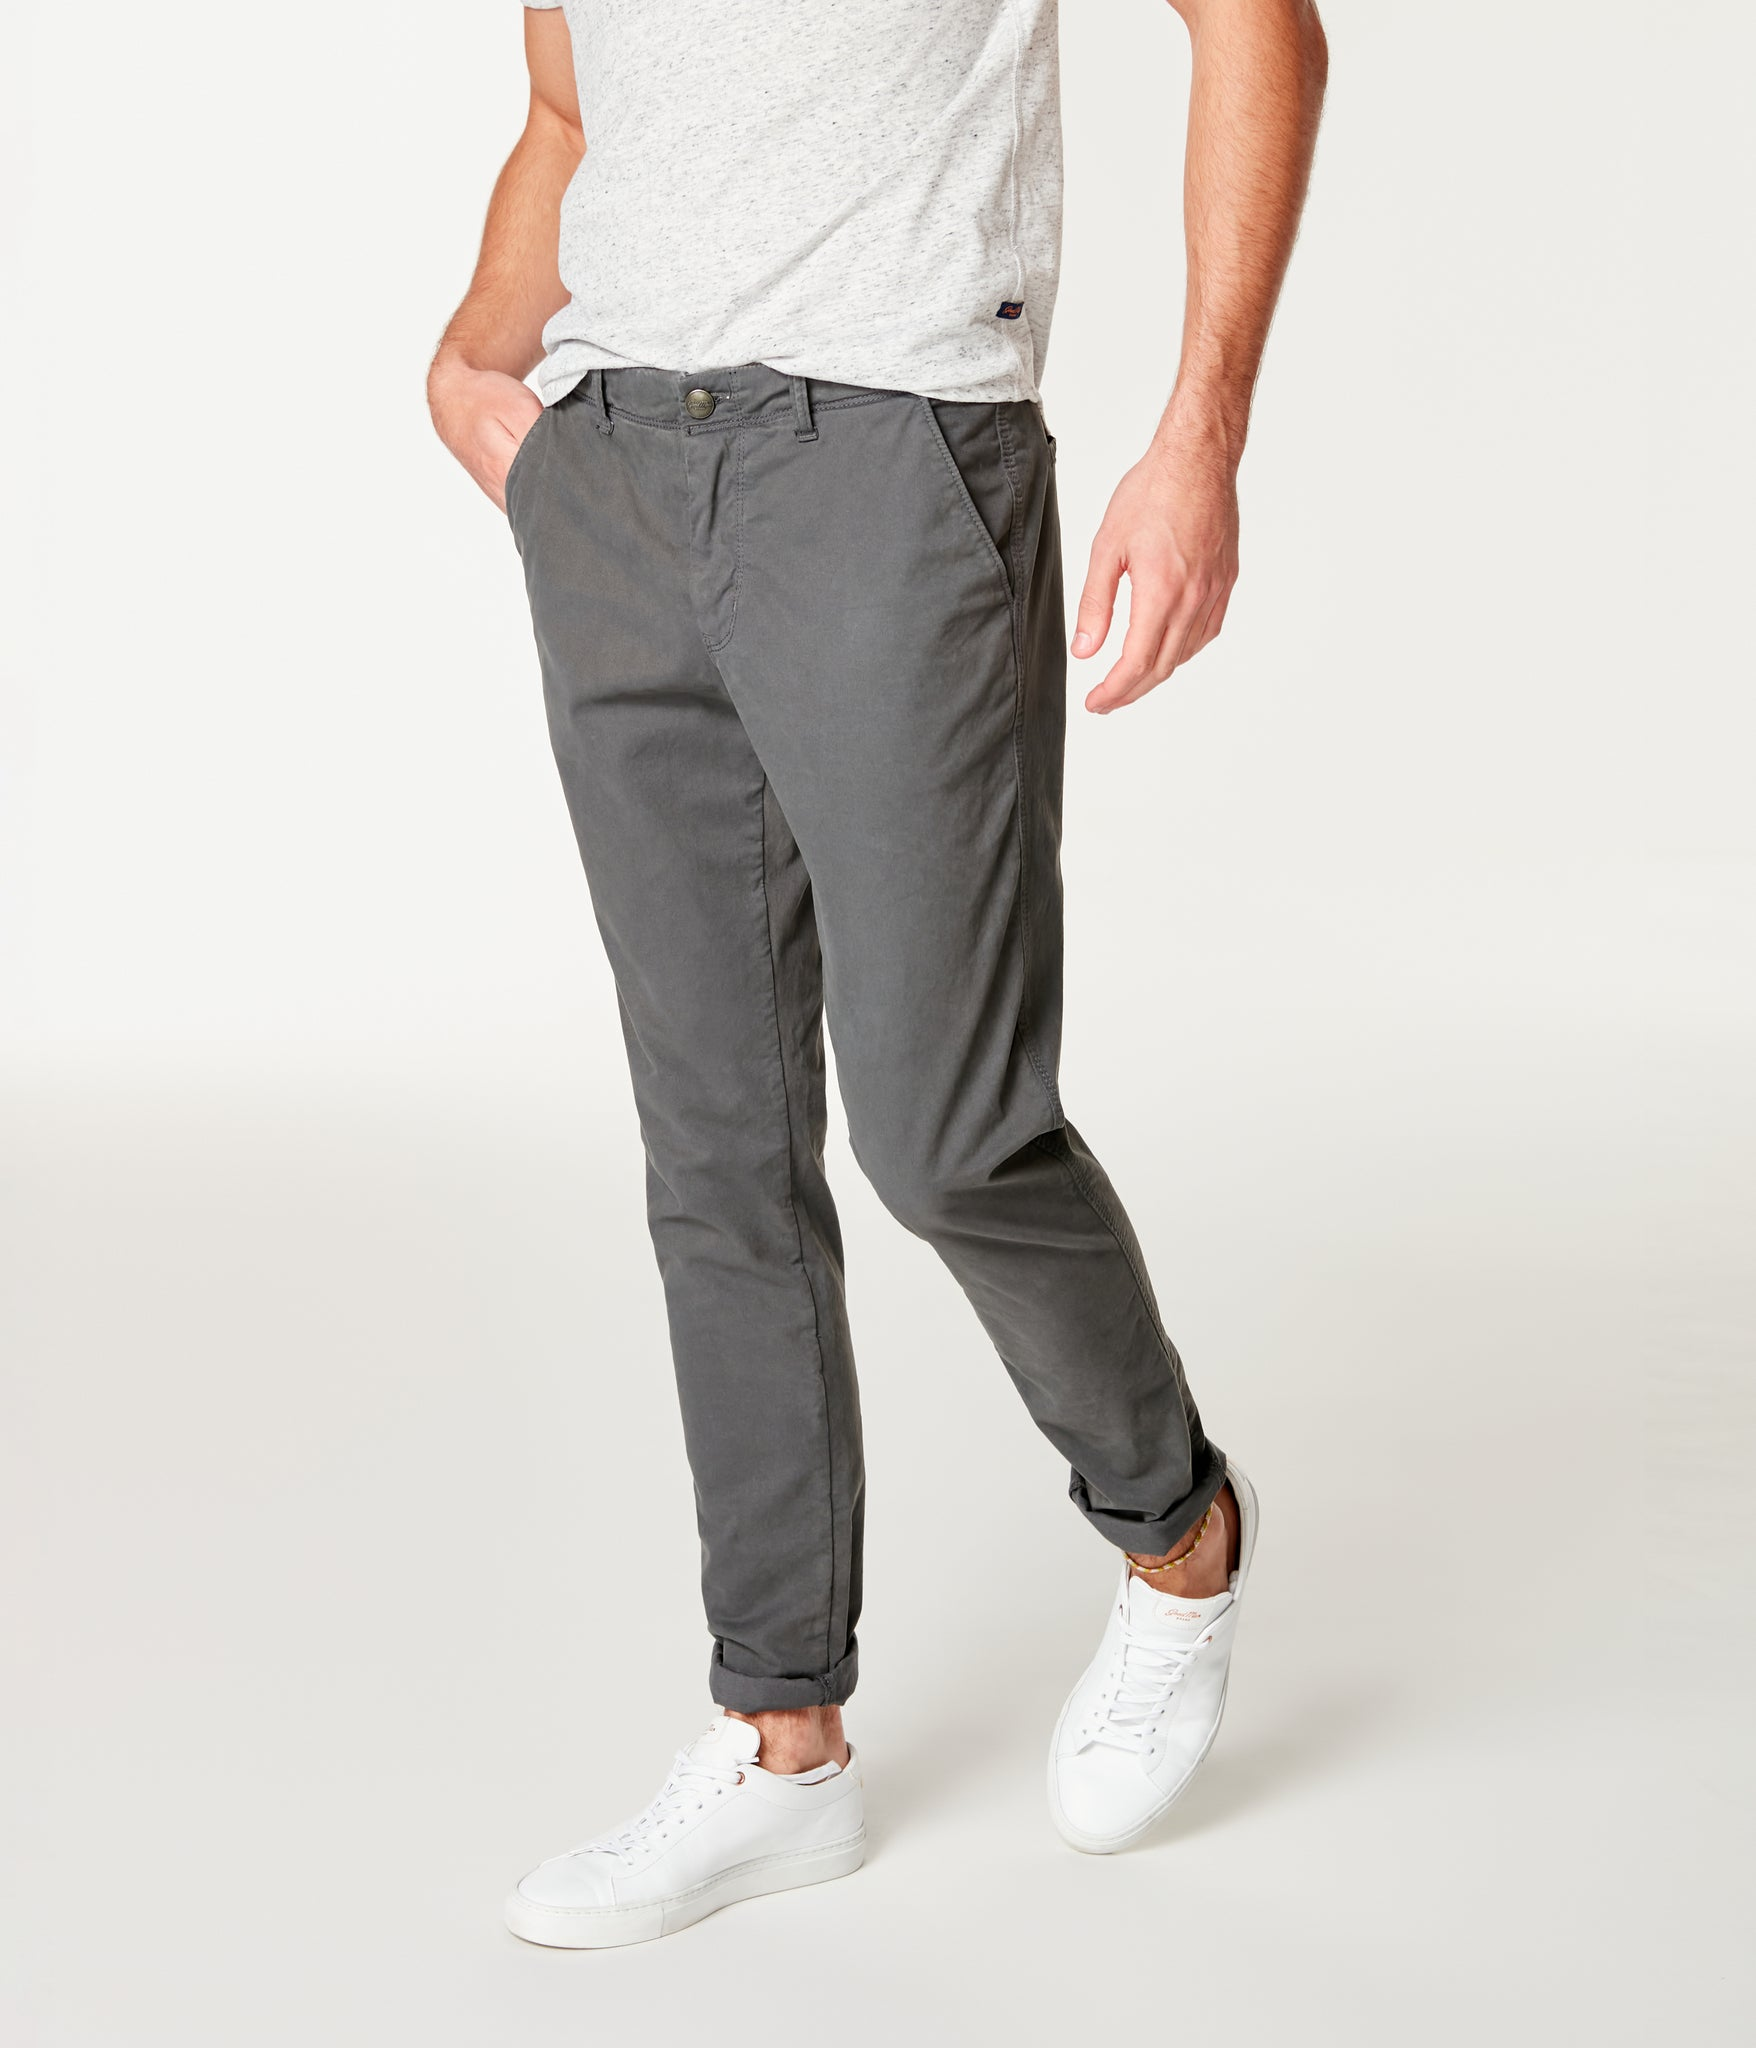 Pro Stretch Twill Star Chino - Magnet